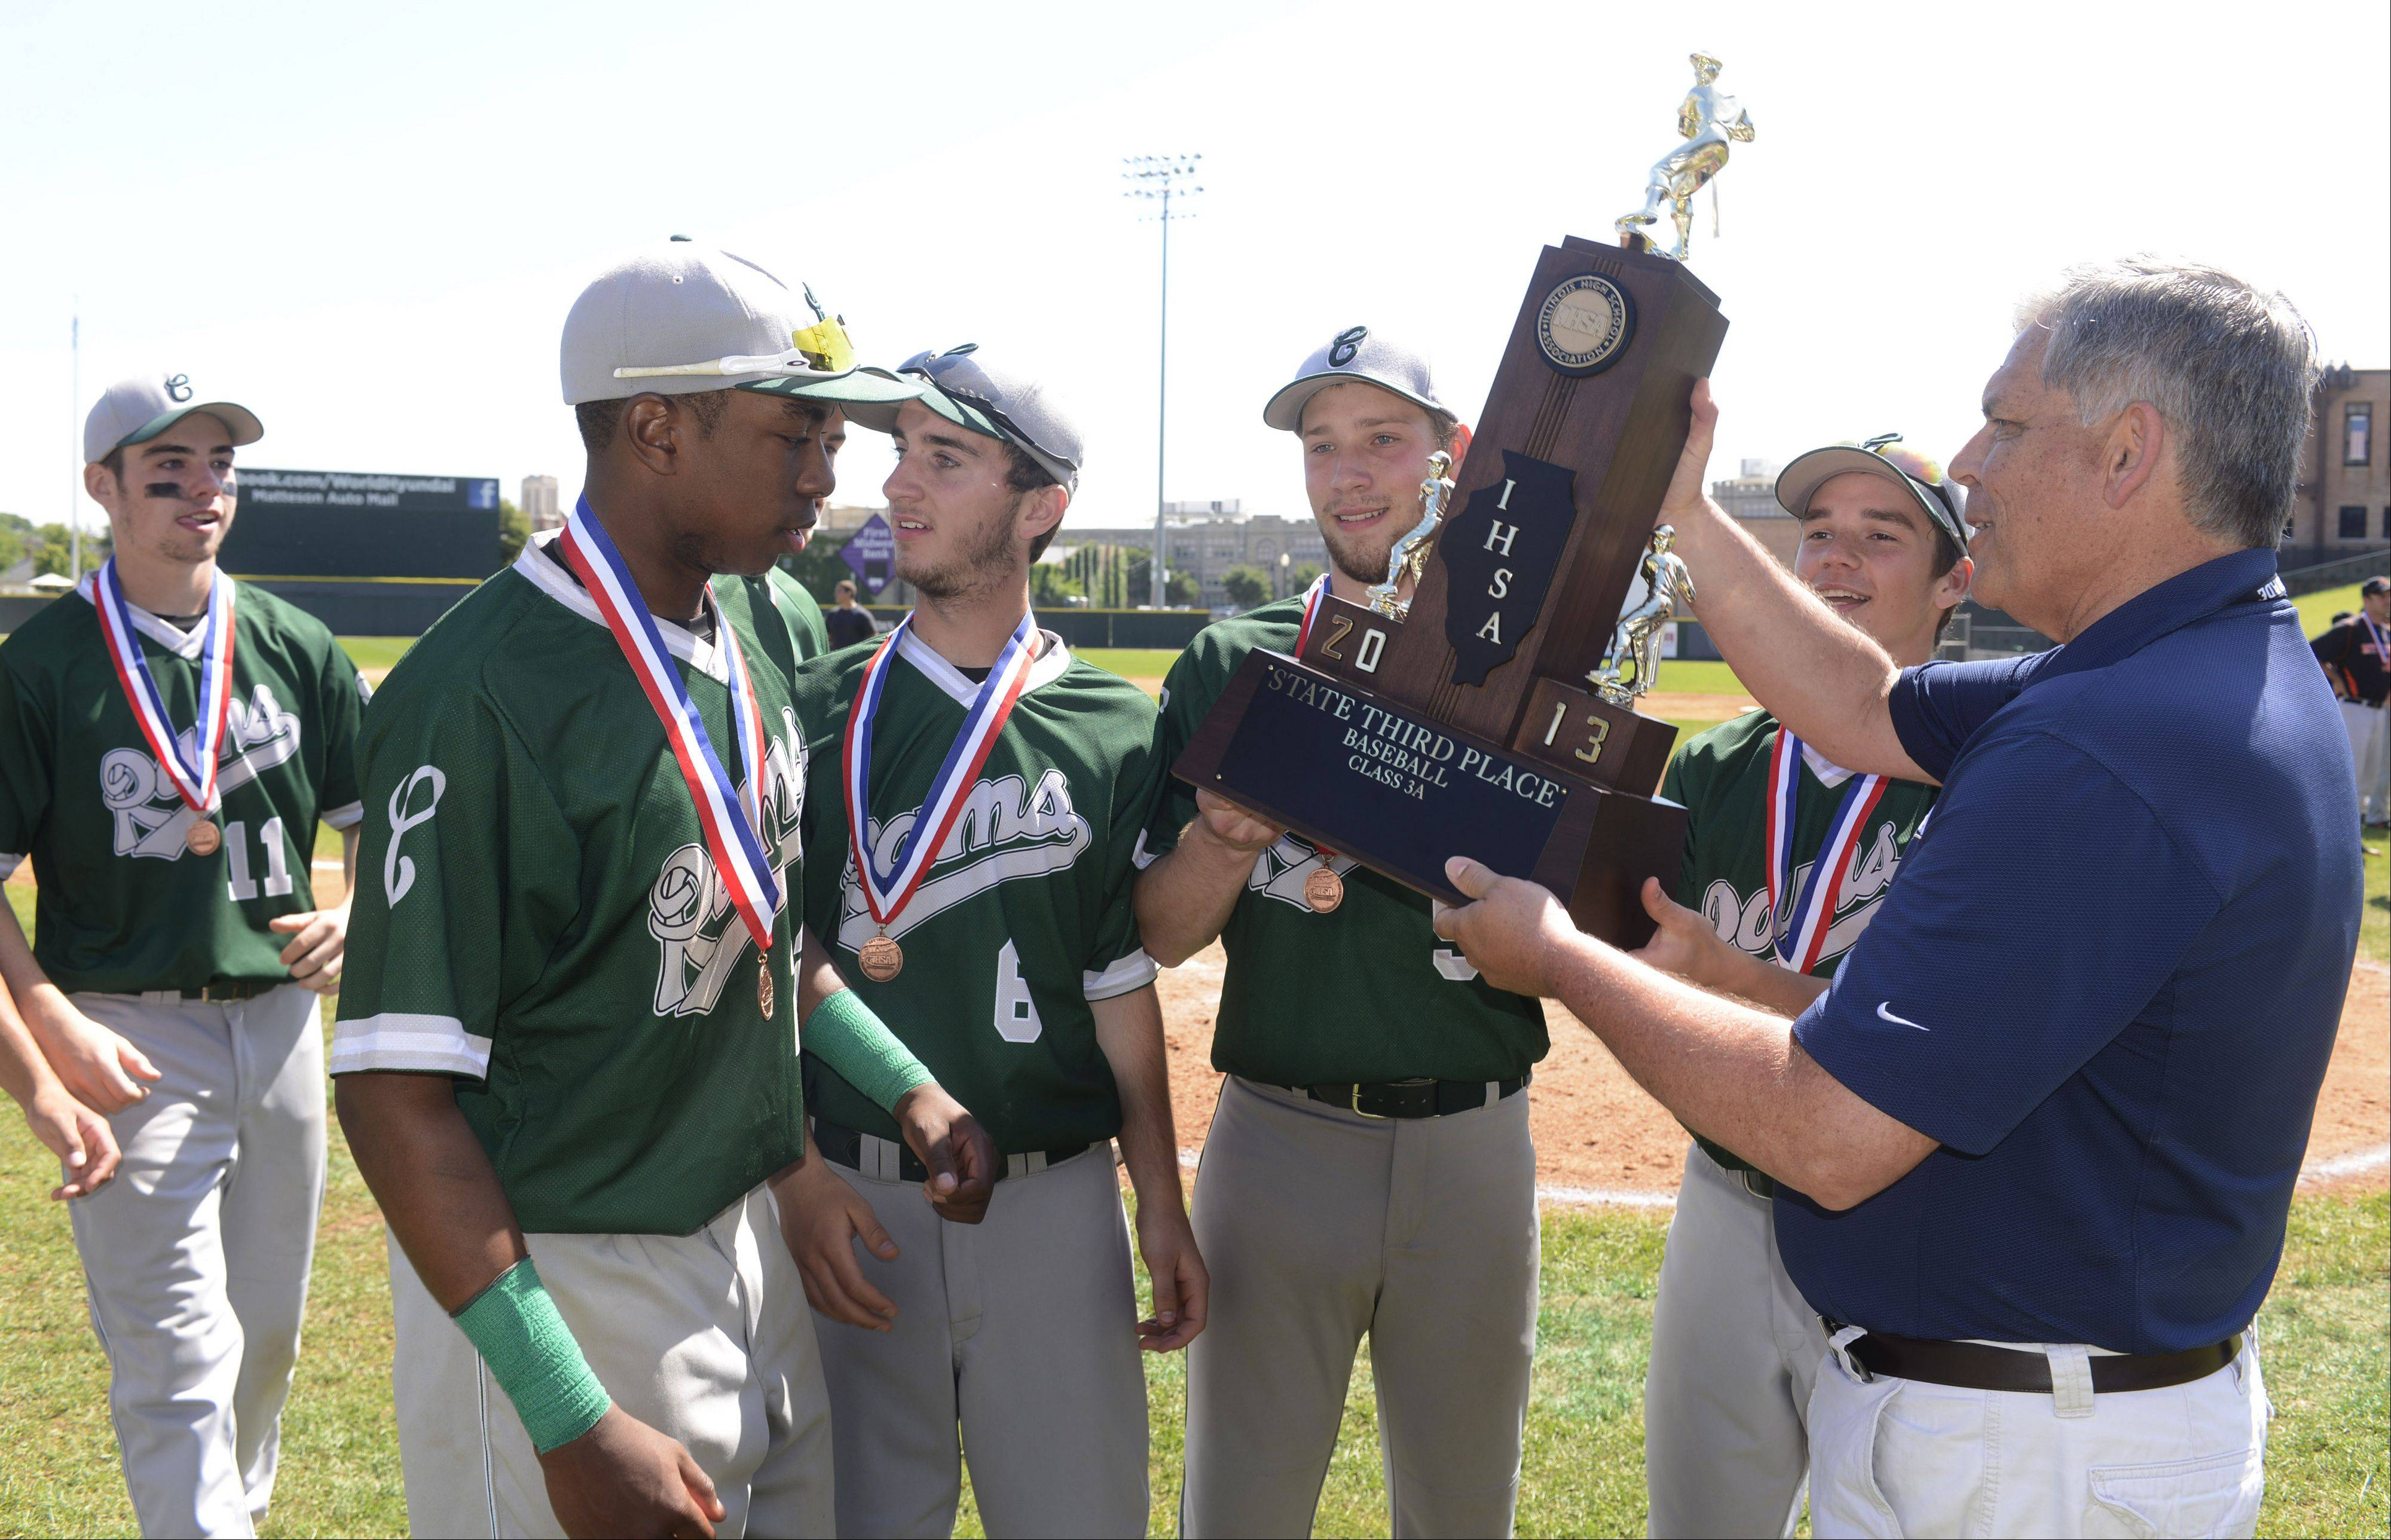 Grayslake Central players receive the trophy after their team beat Mt. Vernon 1-0 during the Class 3A state baseball third-place game at Silver Cross Field in Joliet Saturday.